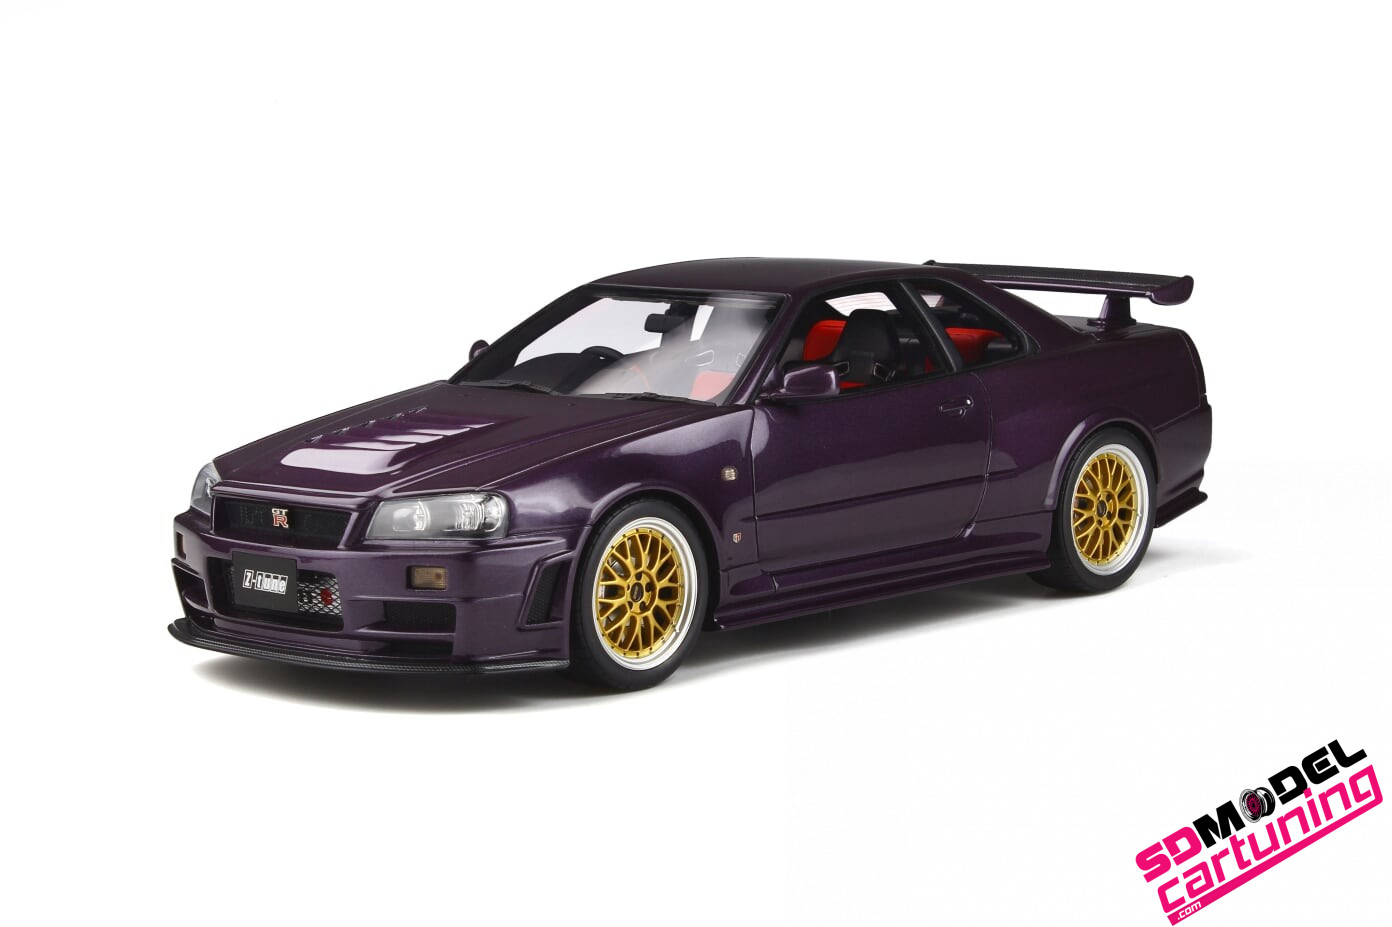 1:18 Nissan GT-R R34 Nismo Midhnight purple / gold